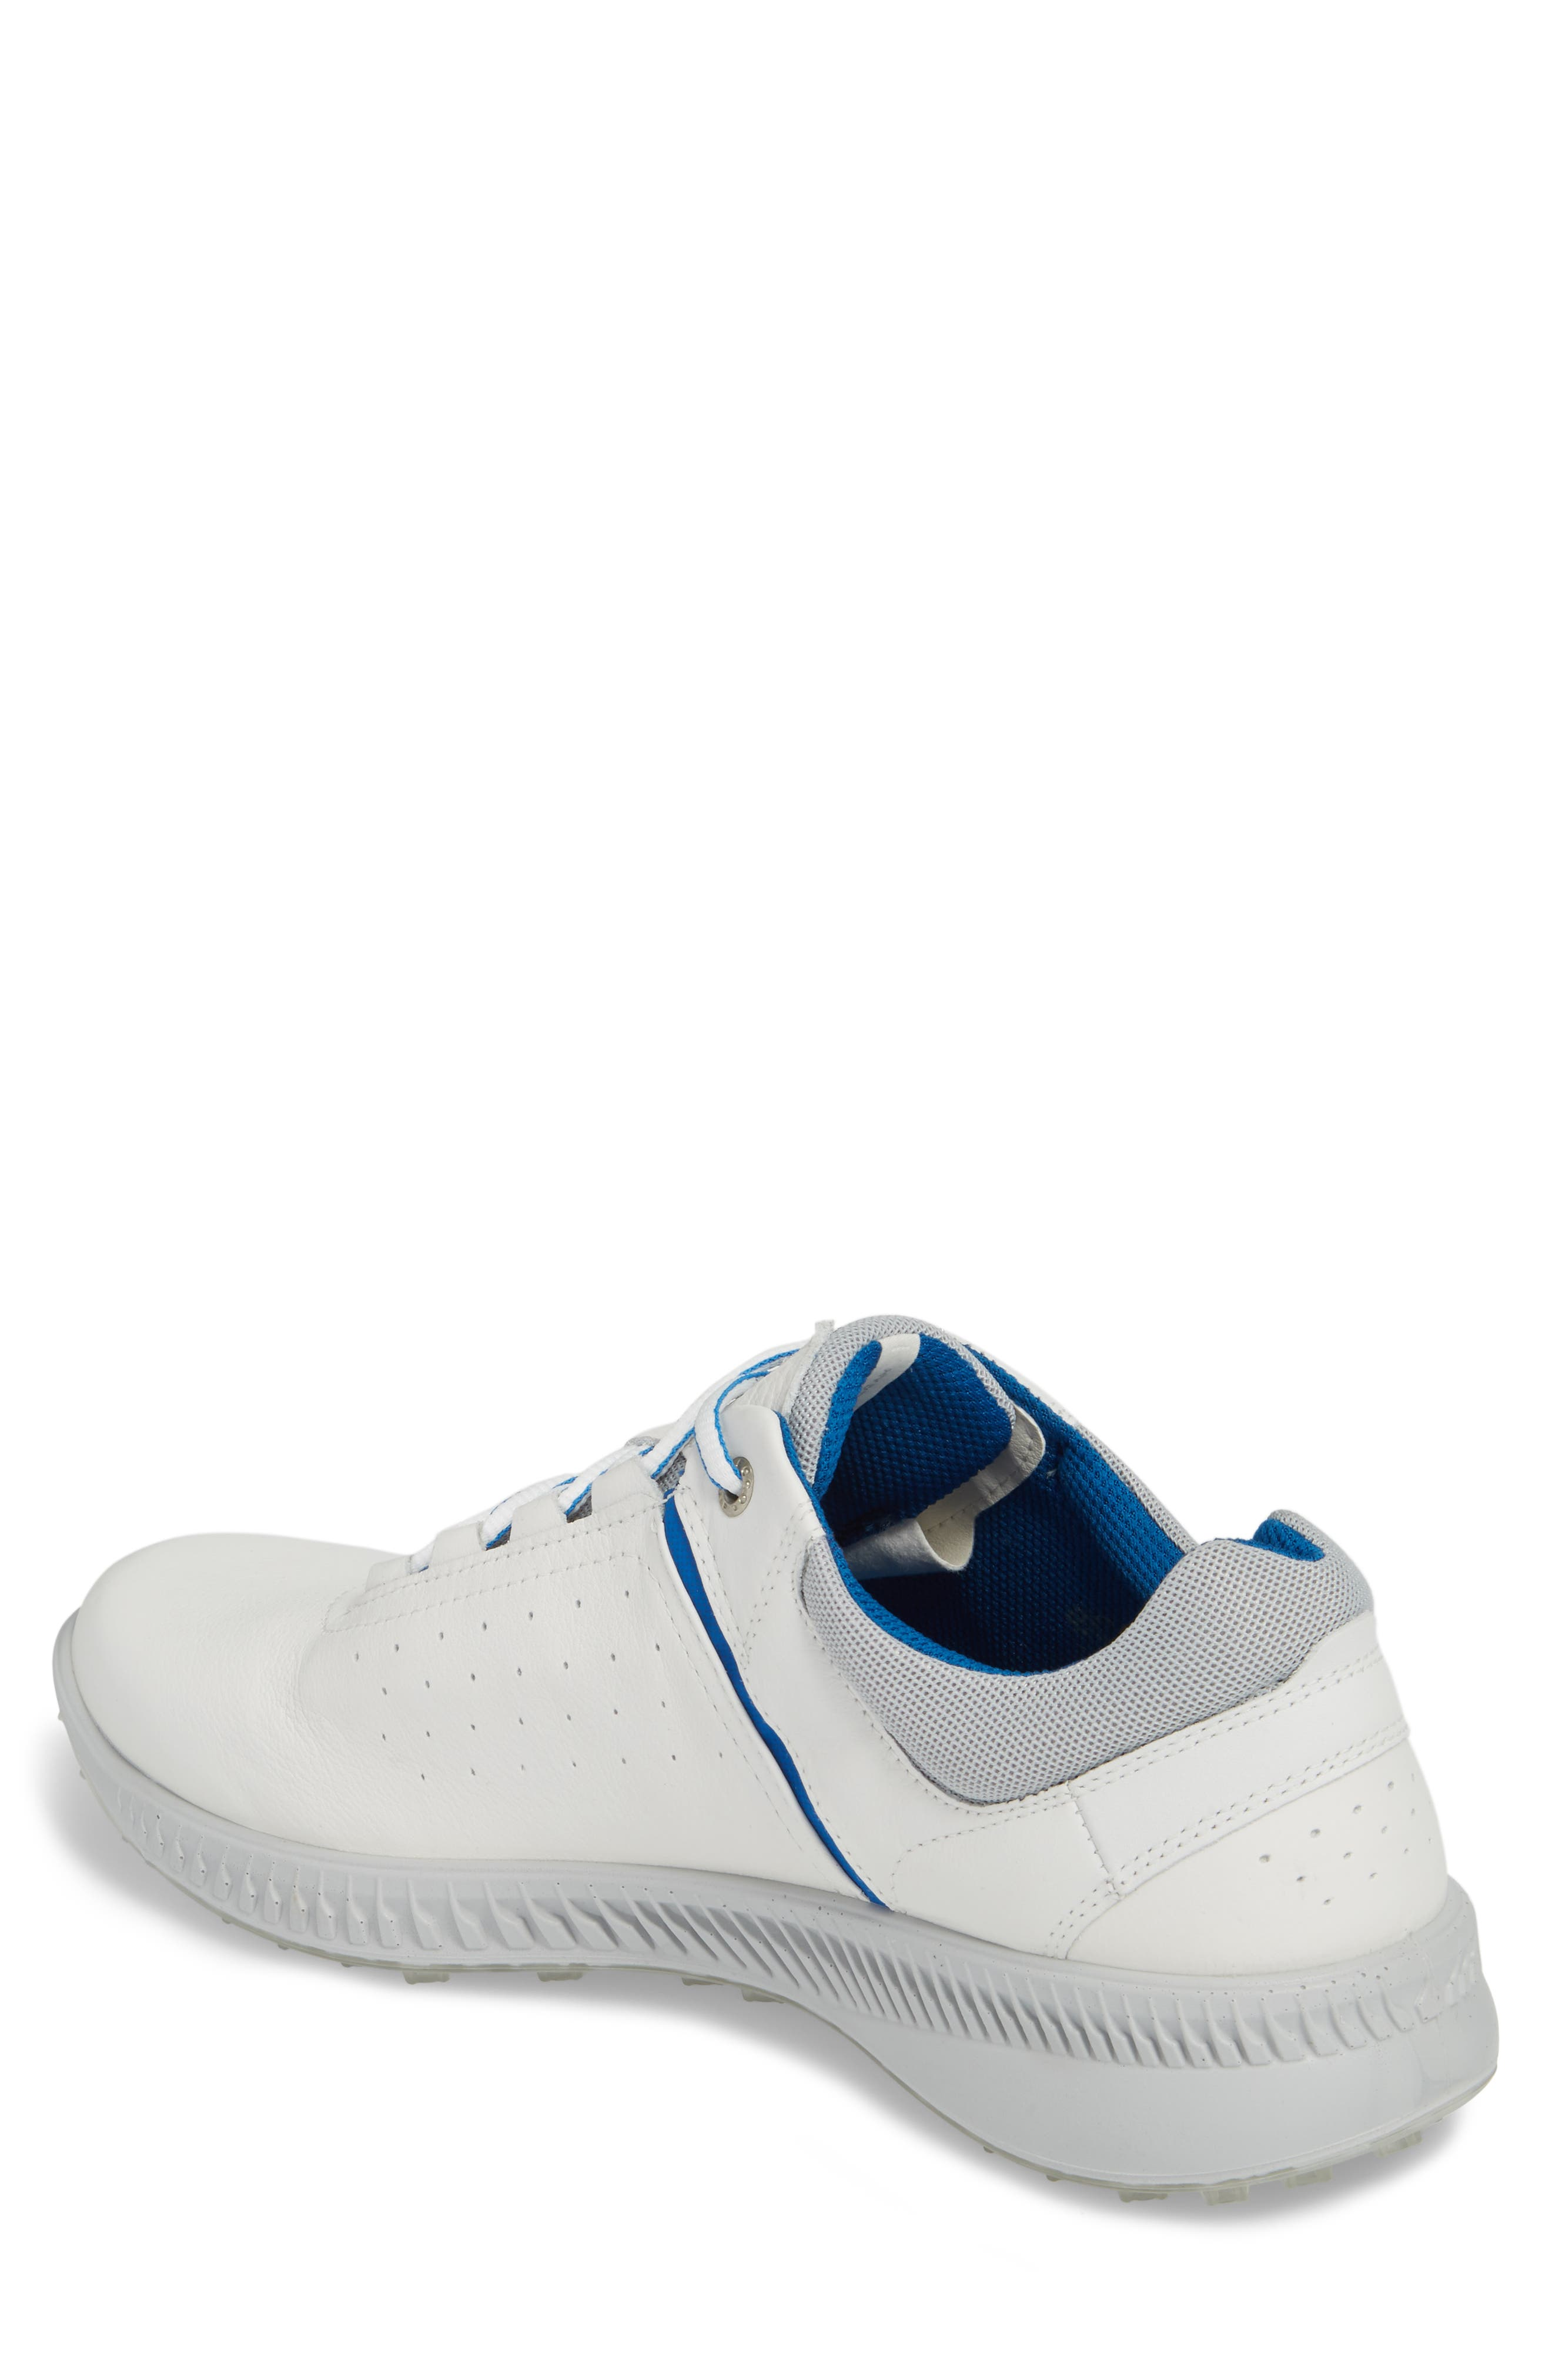 S-Drive Water Repellent Golf Shoe,                             Alternate thumbnail 2, color,                             White Leather